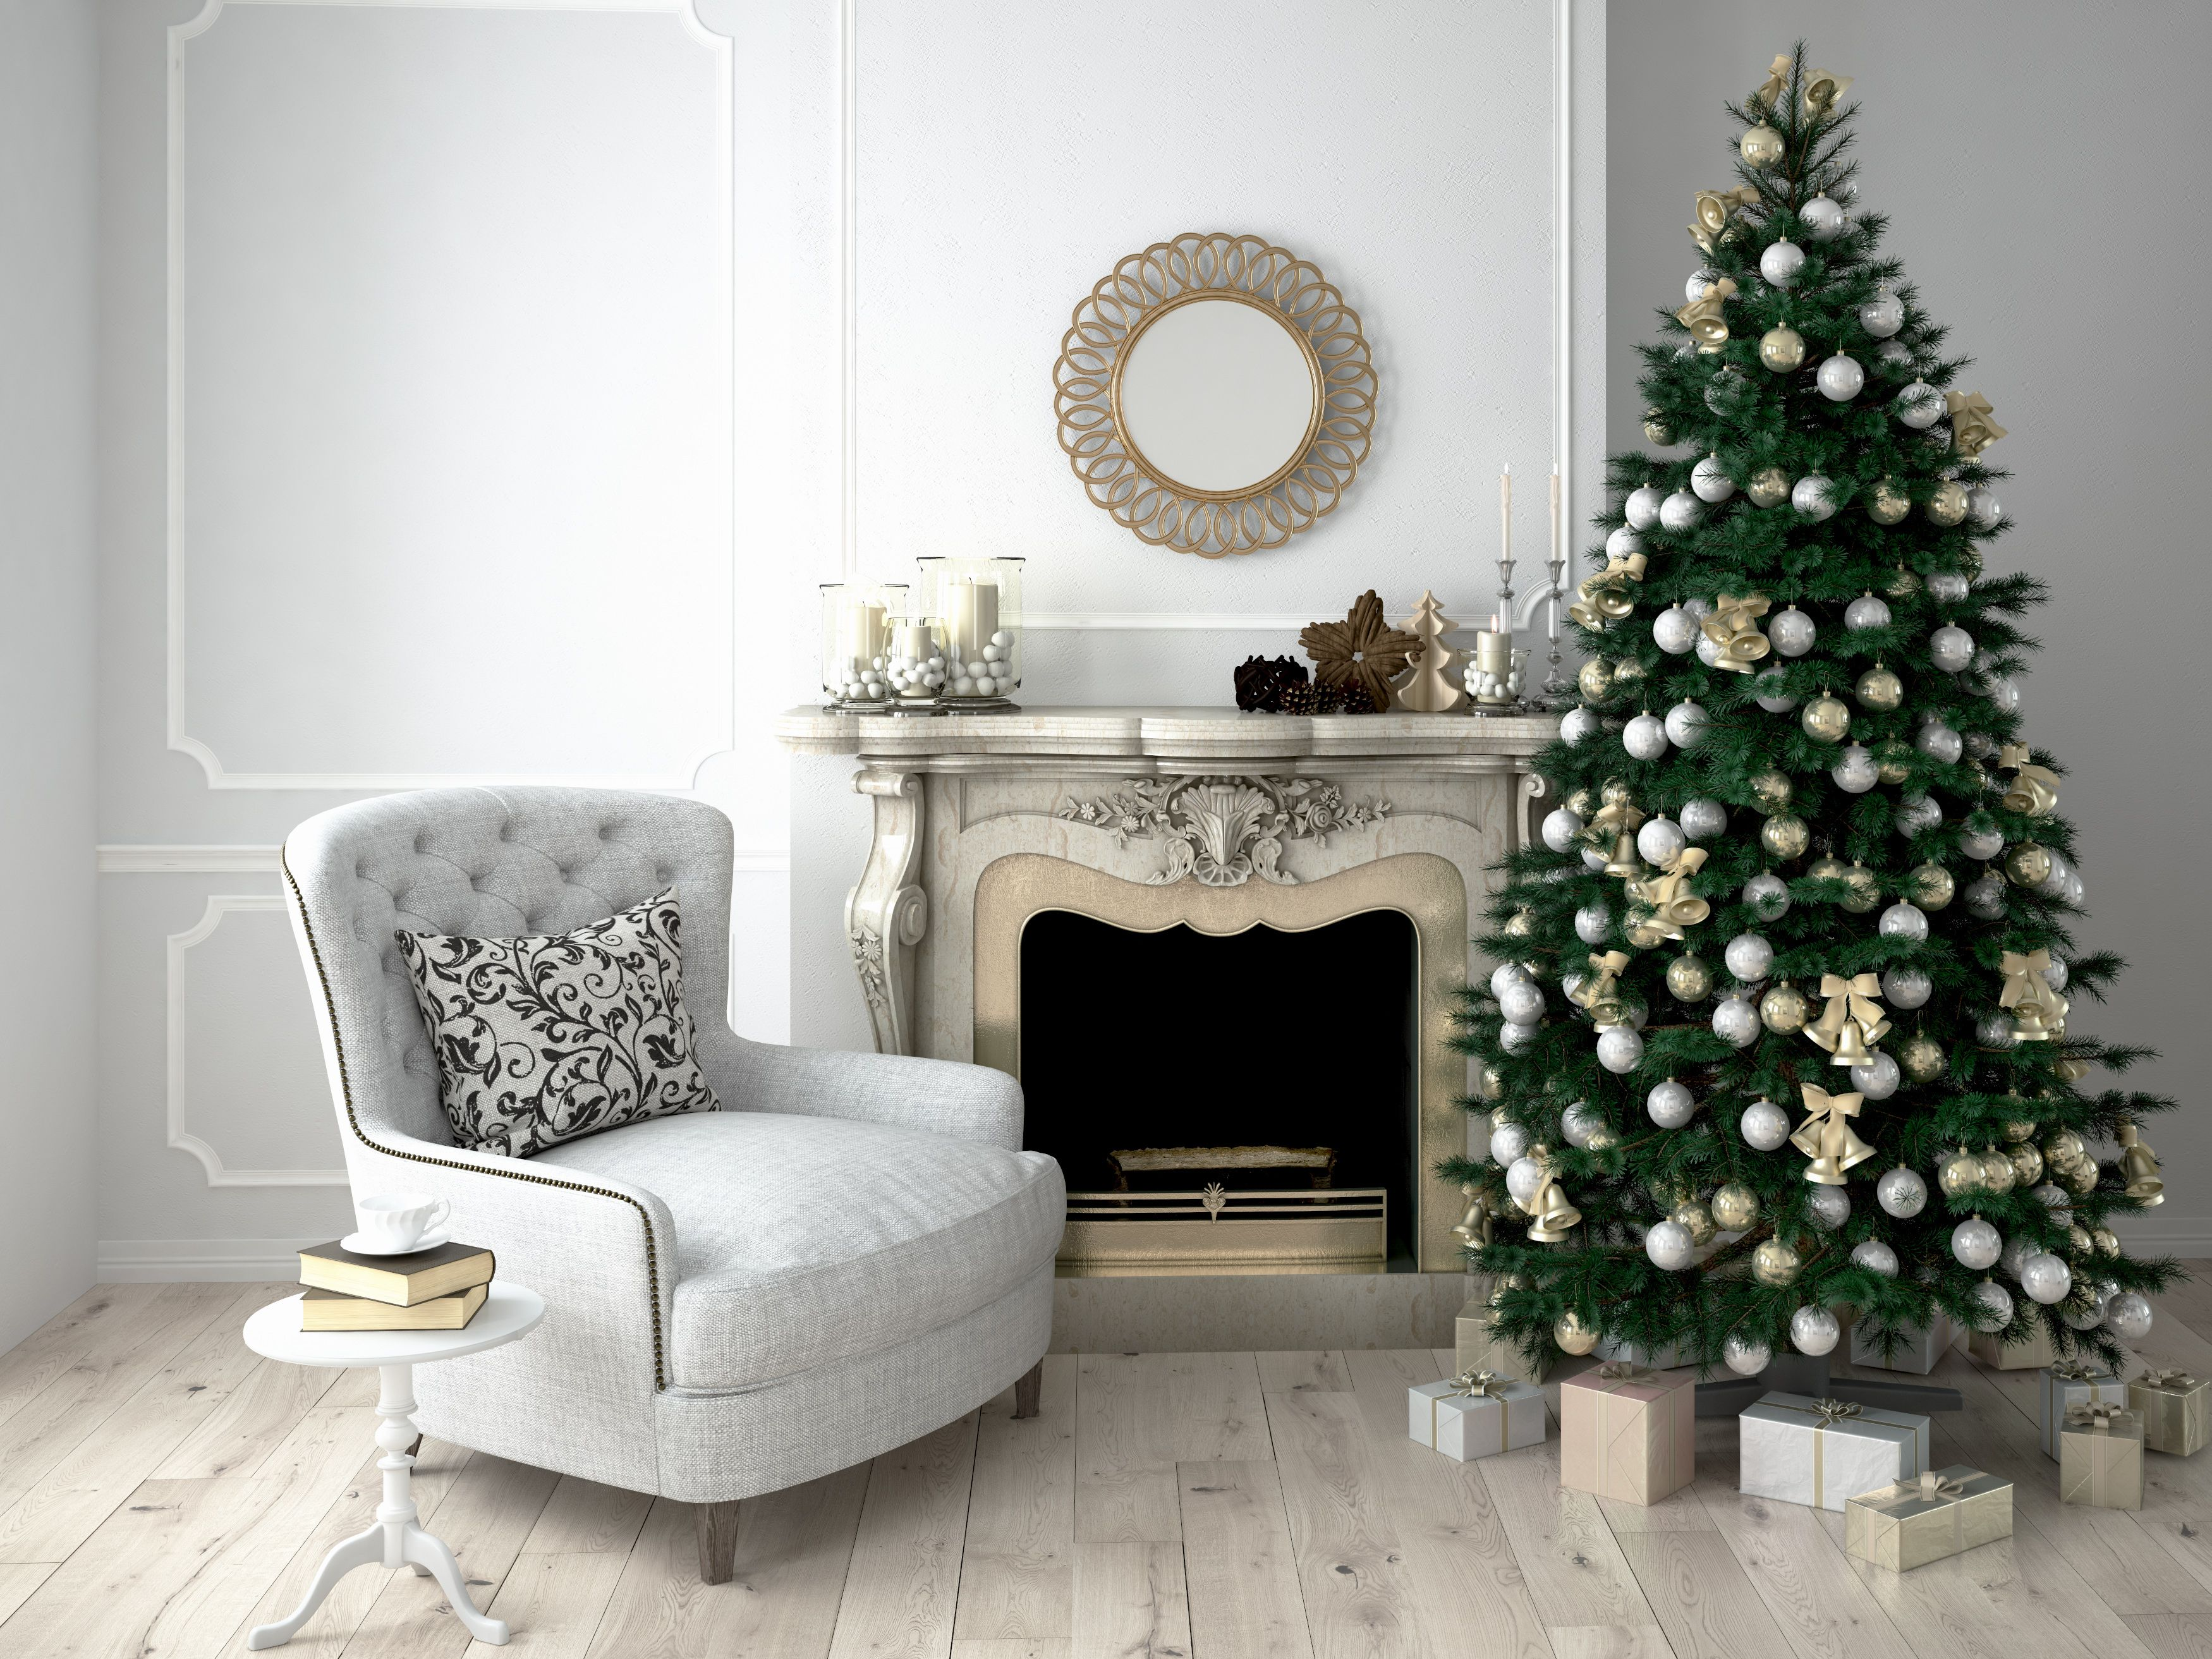 image & 15 Stunning Christmas Living Rooms - Holiday Living Room Decor Ideas